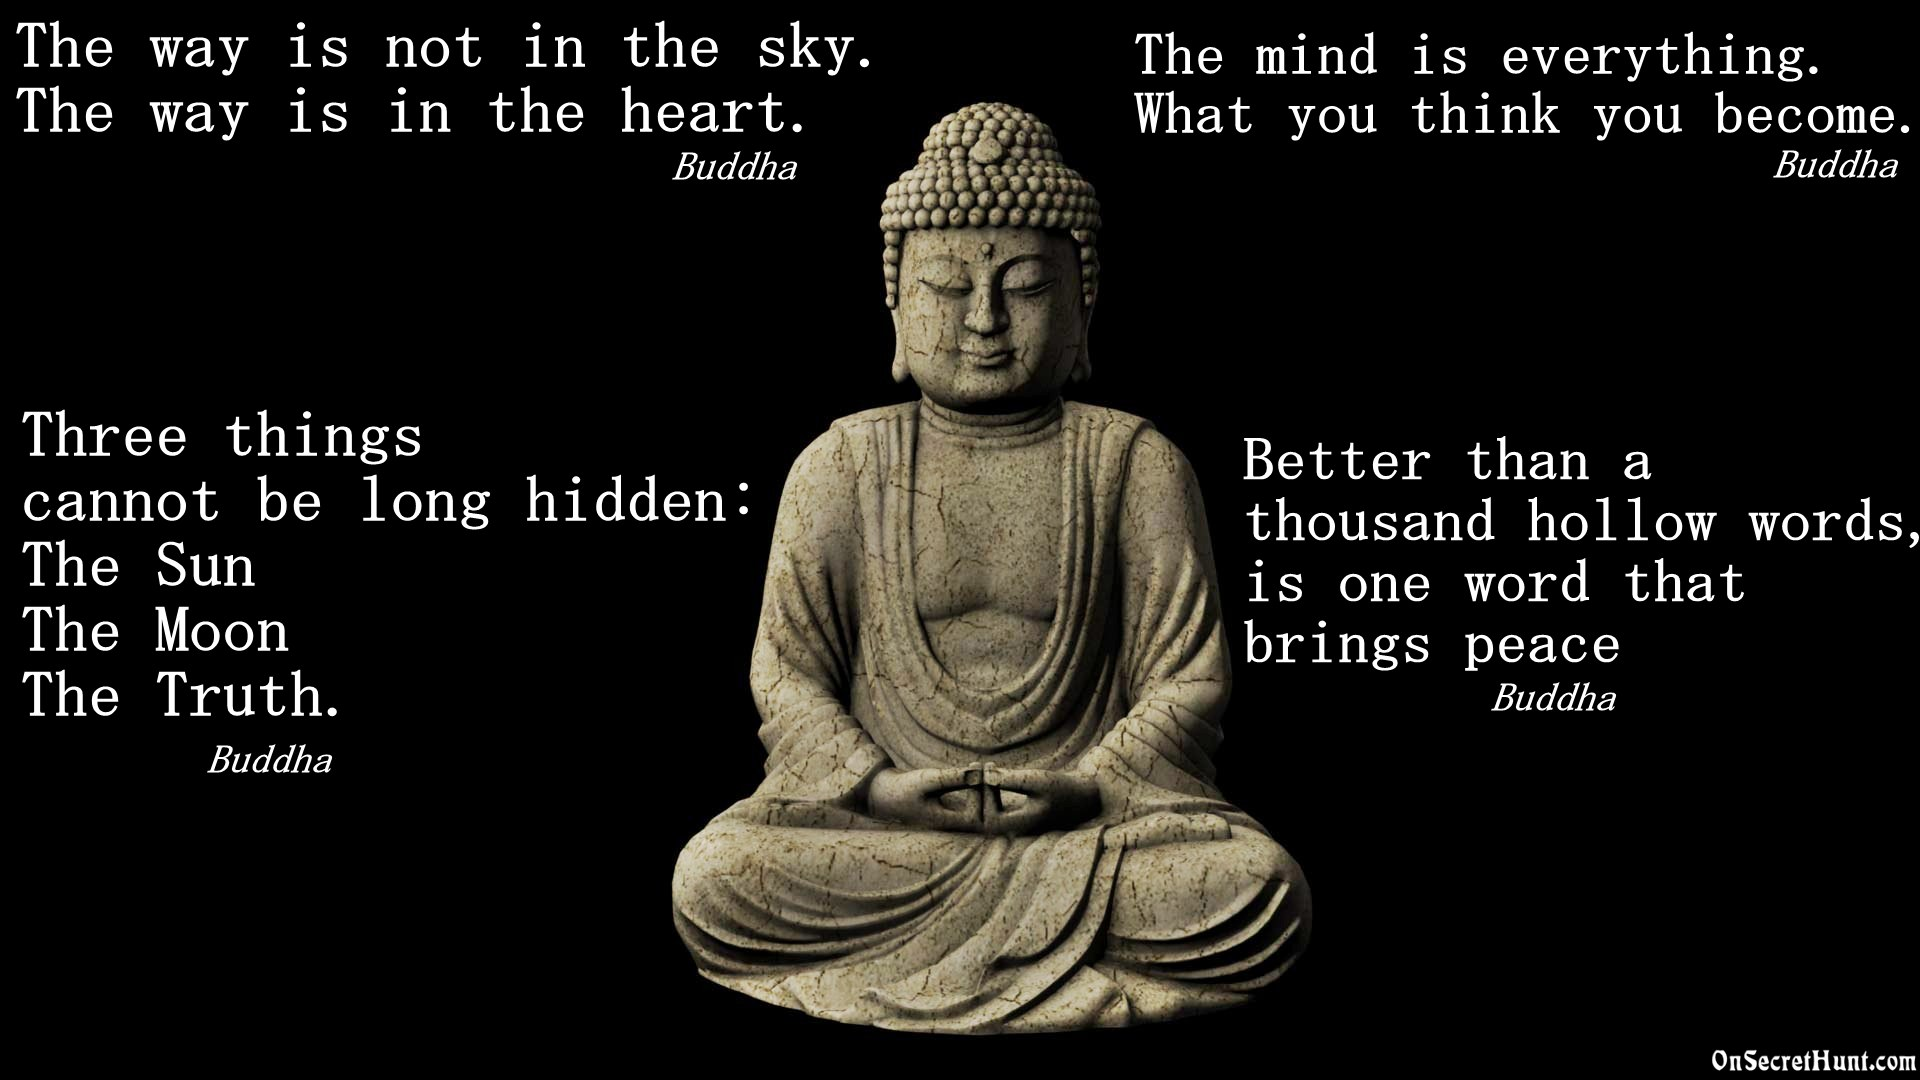 Gautama Buddha Quotes 10 Must Read Life Lessons From Buddha  Sky Pham